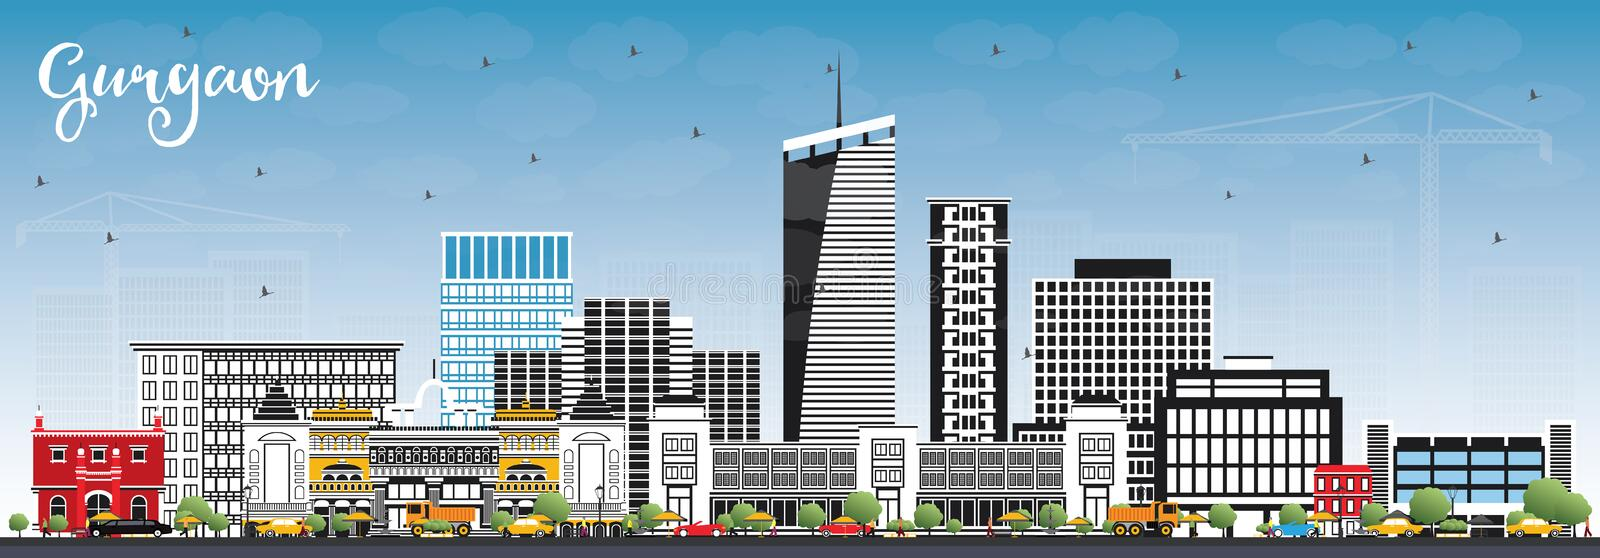 Gurgaon India City Skyline with Gray Buildings and Blue Sky. Vector Illustration. Business Travel and Tourism Concept with Modern Architecture. Gurgaon royalty free illustration